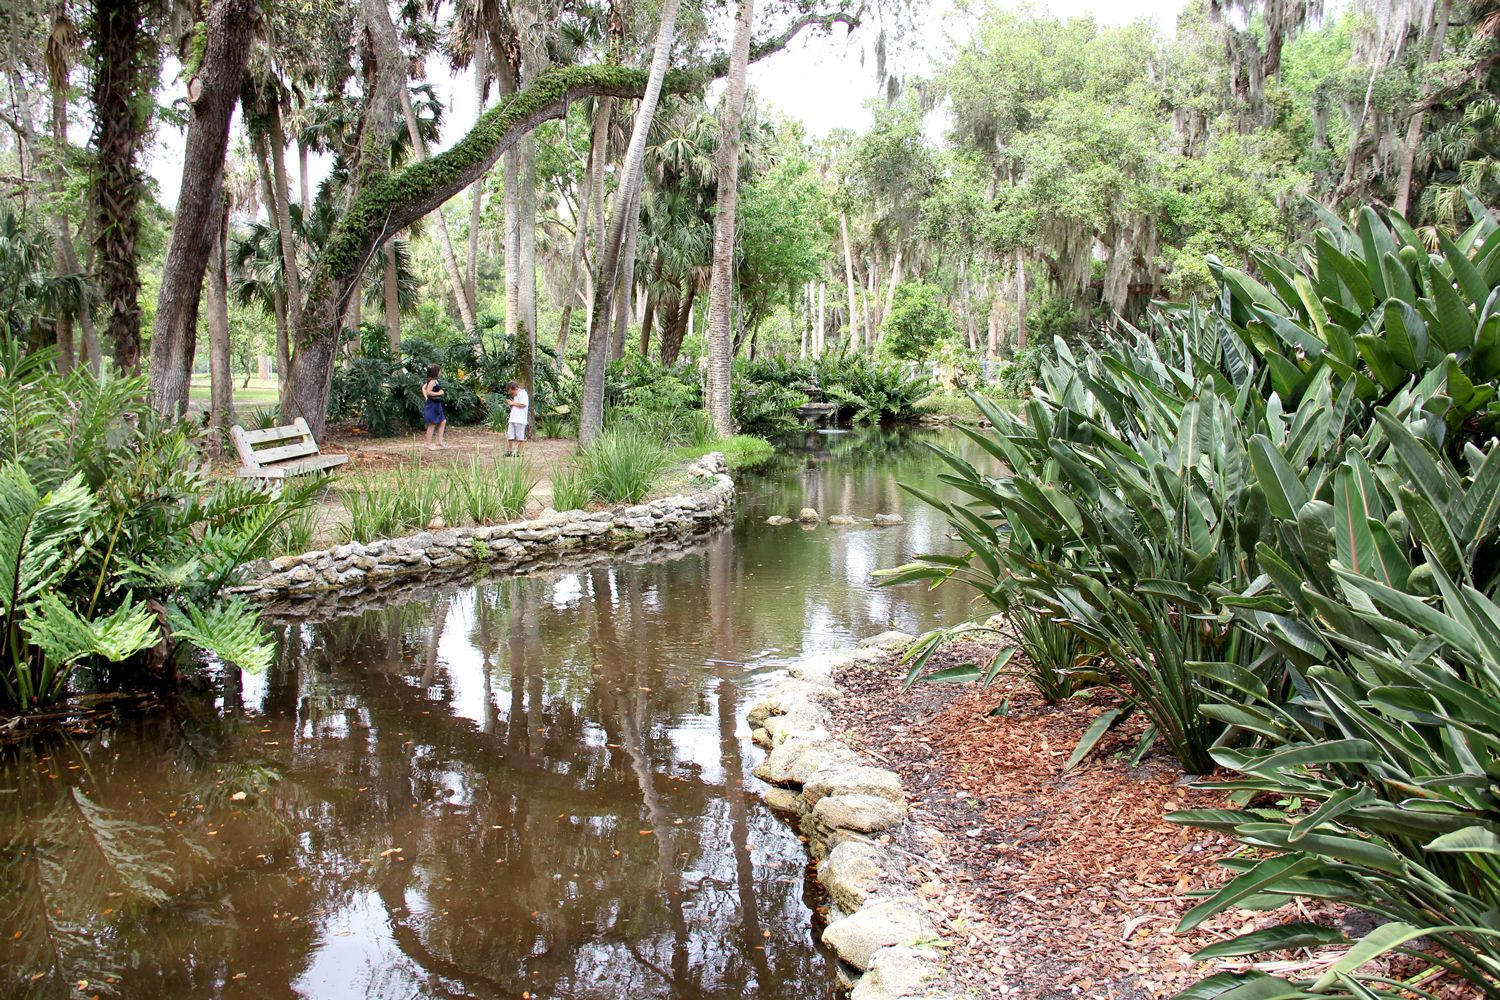 Washington Oaks Gardens State Park In Palm Coast Florida Famous For Its Formal Gardens And Also